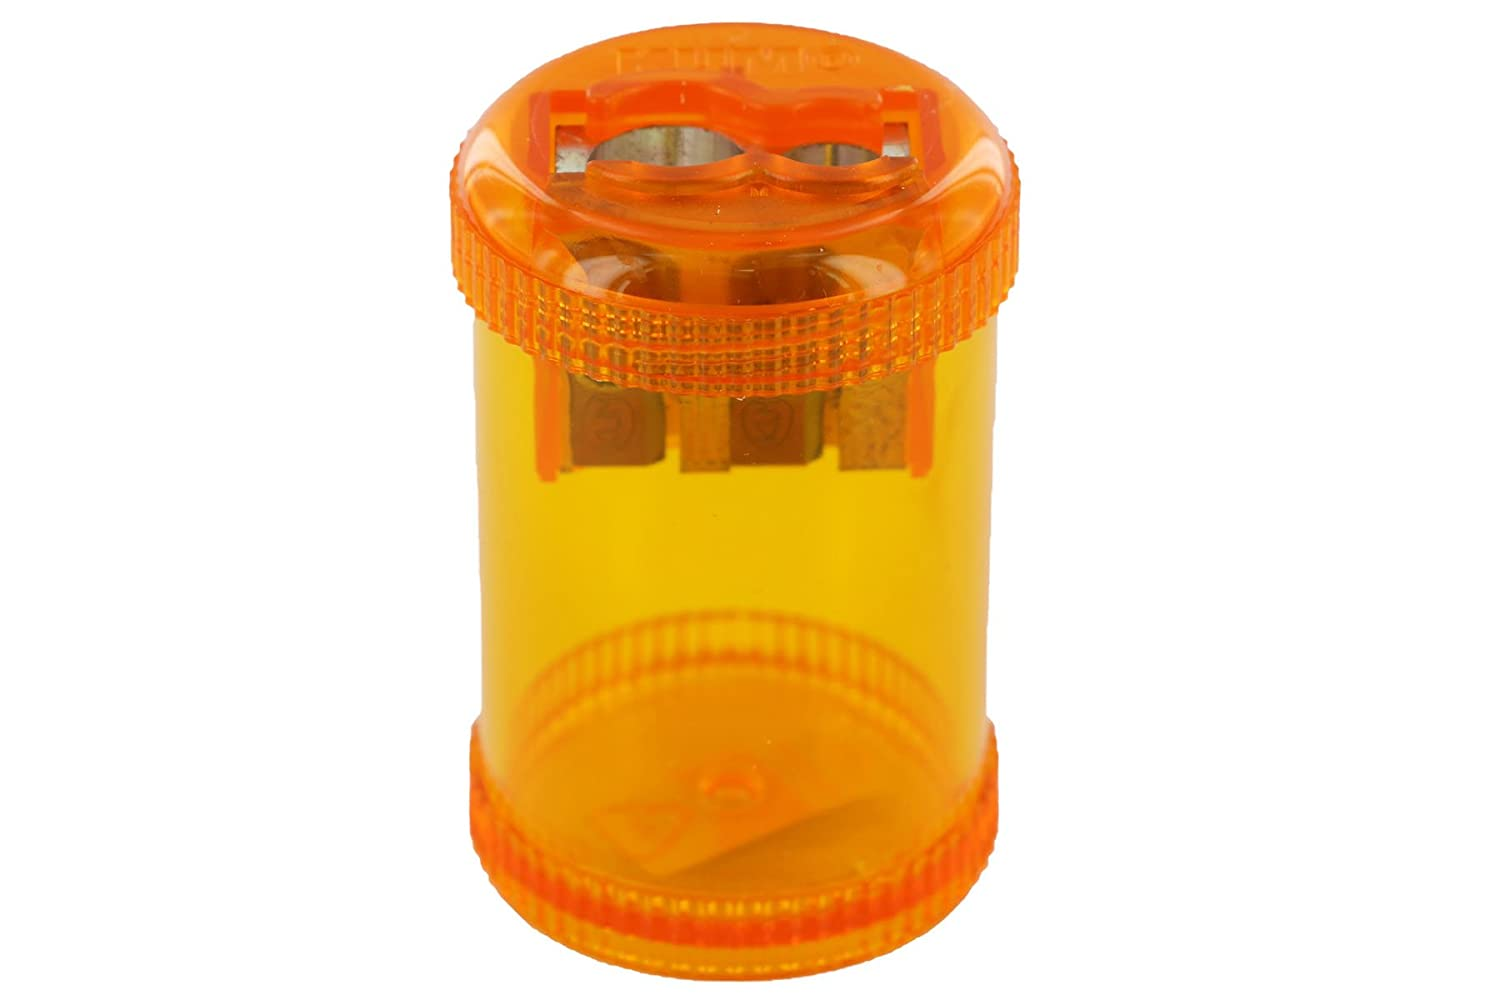 'KUM az103.28.19 Oil Container Double Sharpener 430 M2 O, The Round of Magnesium, SCREW CAP, 1 Piece, Orange AZ103.28.19-O